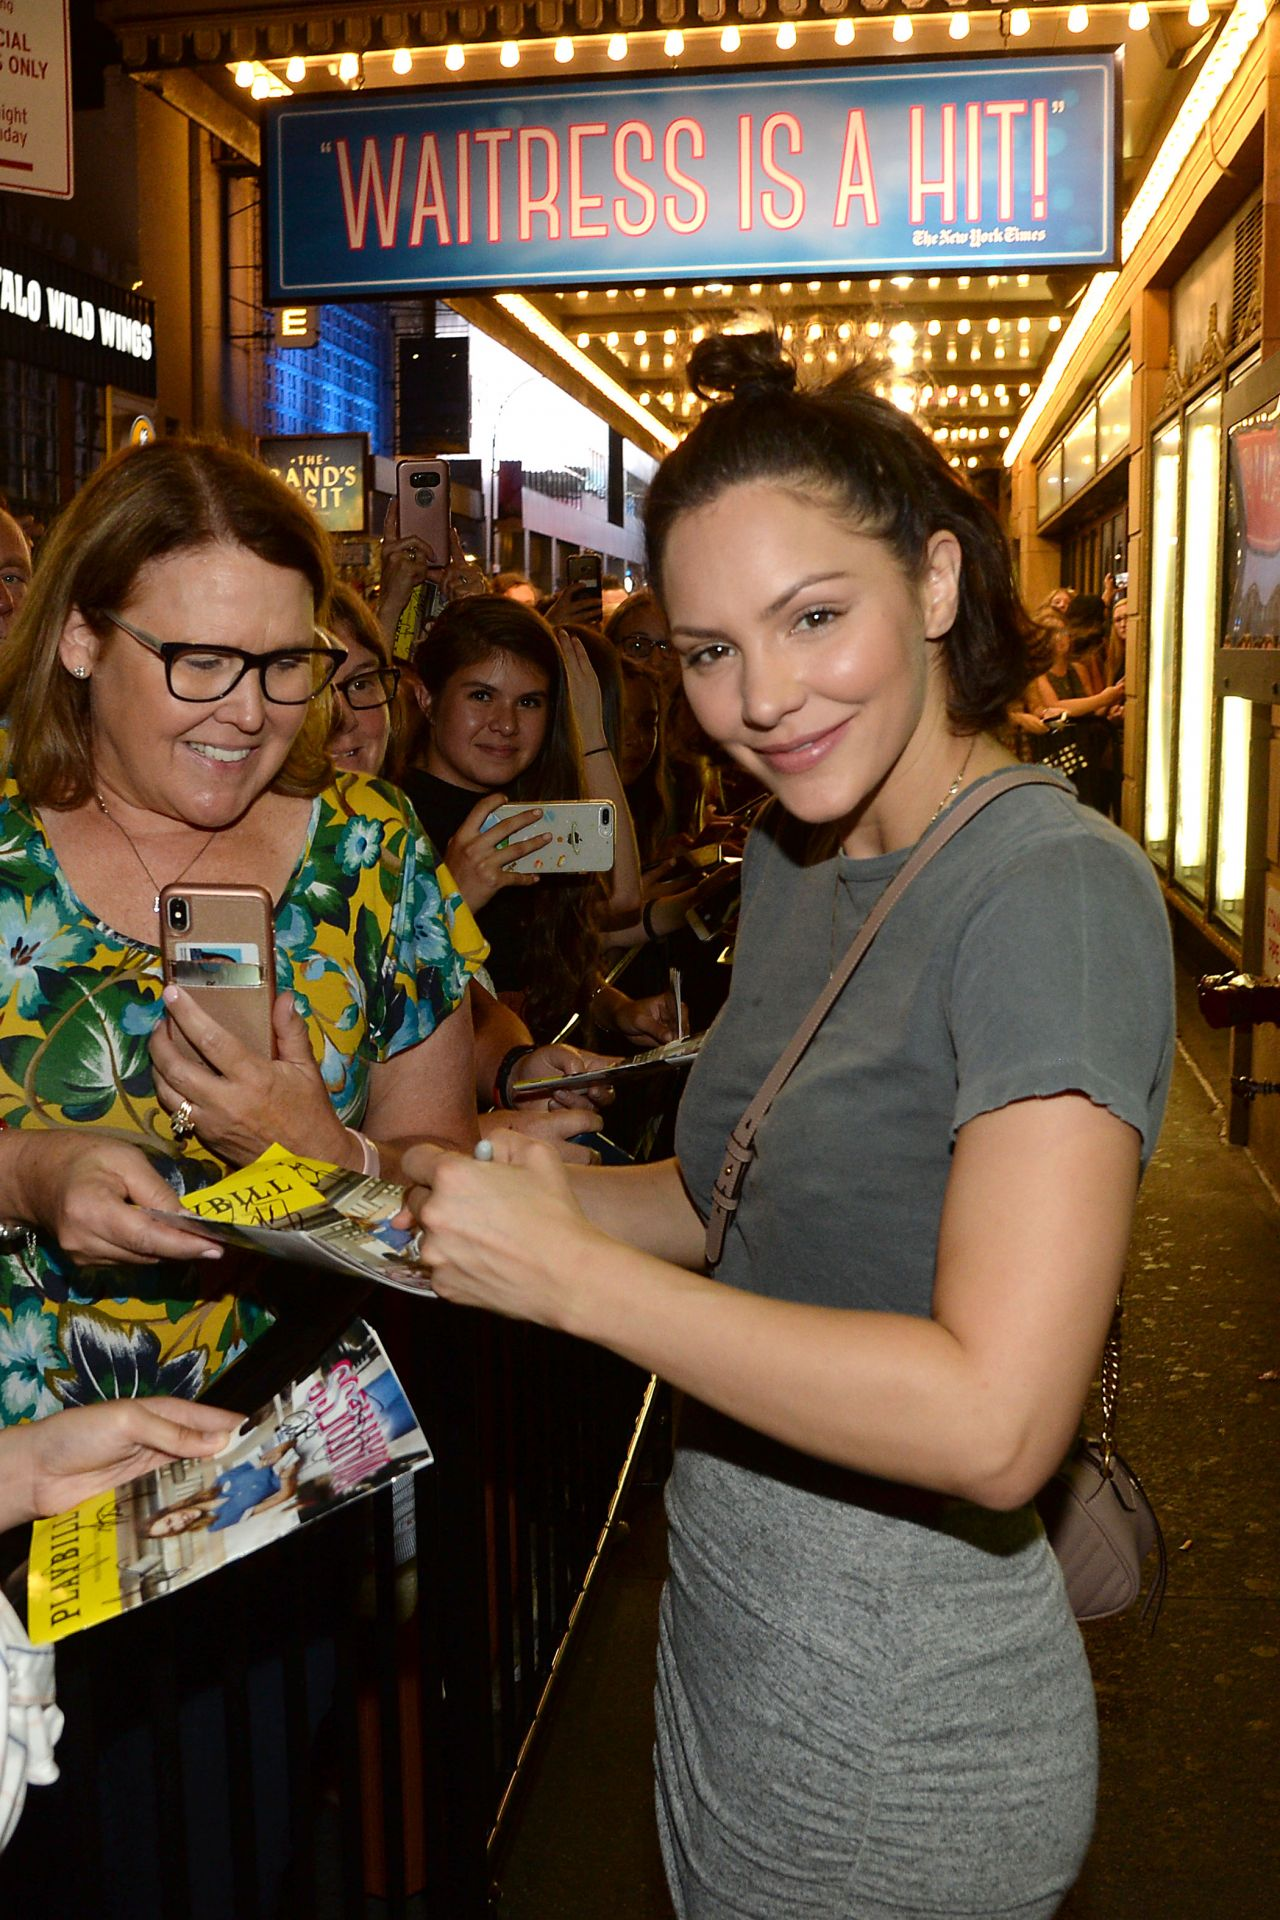 Katharine Mcphee After Starring In The The Broadway Musical Waitress In Nyc 08 18 2018